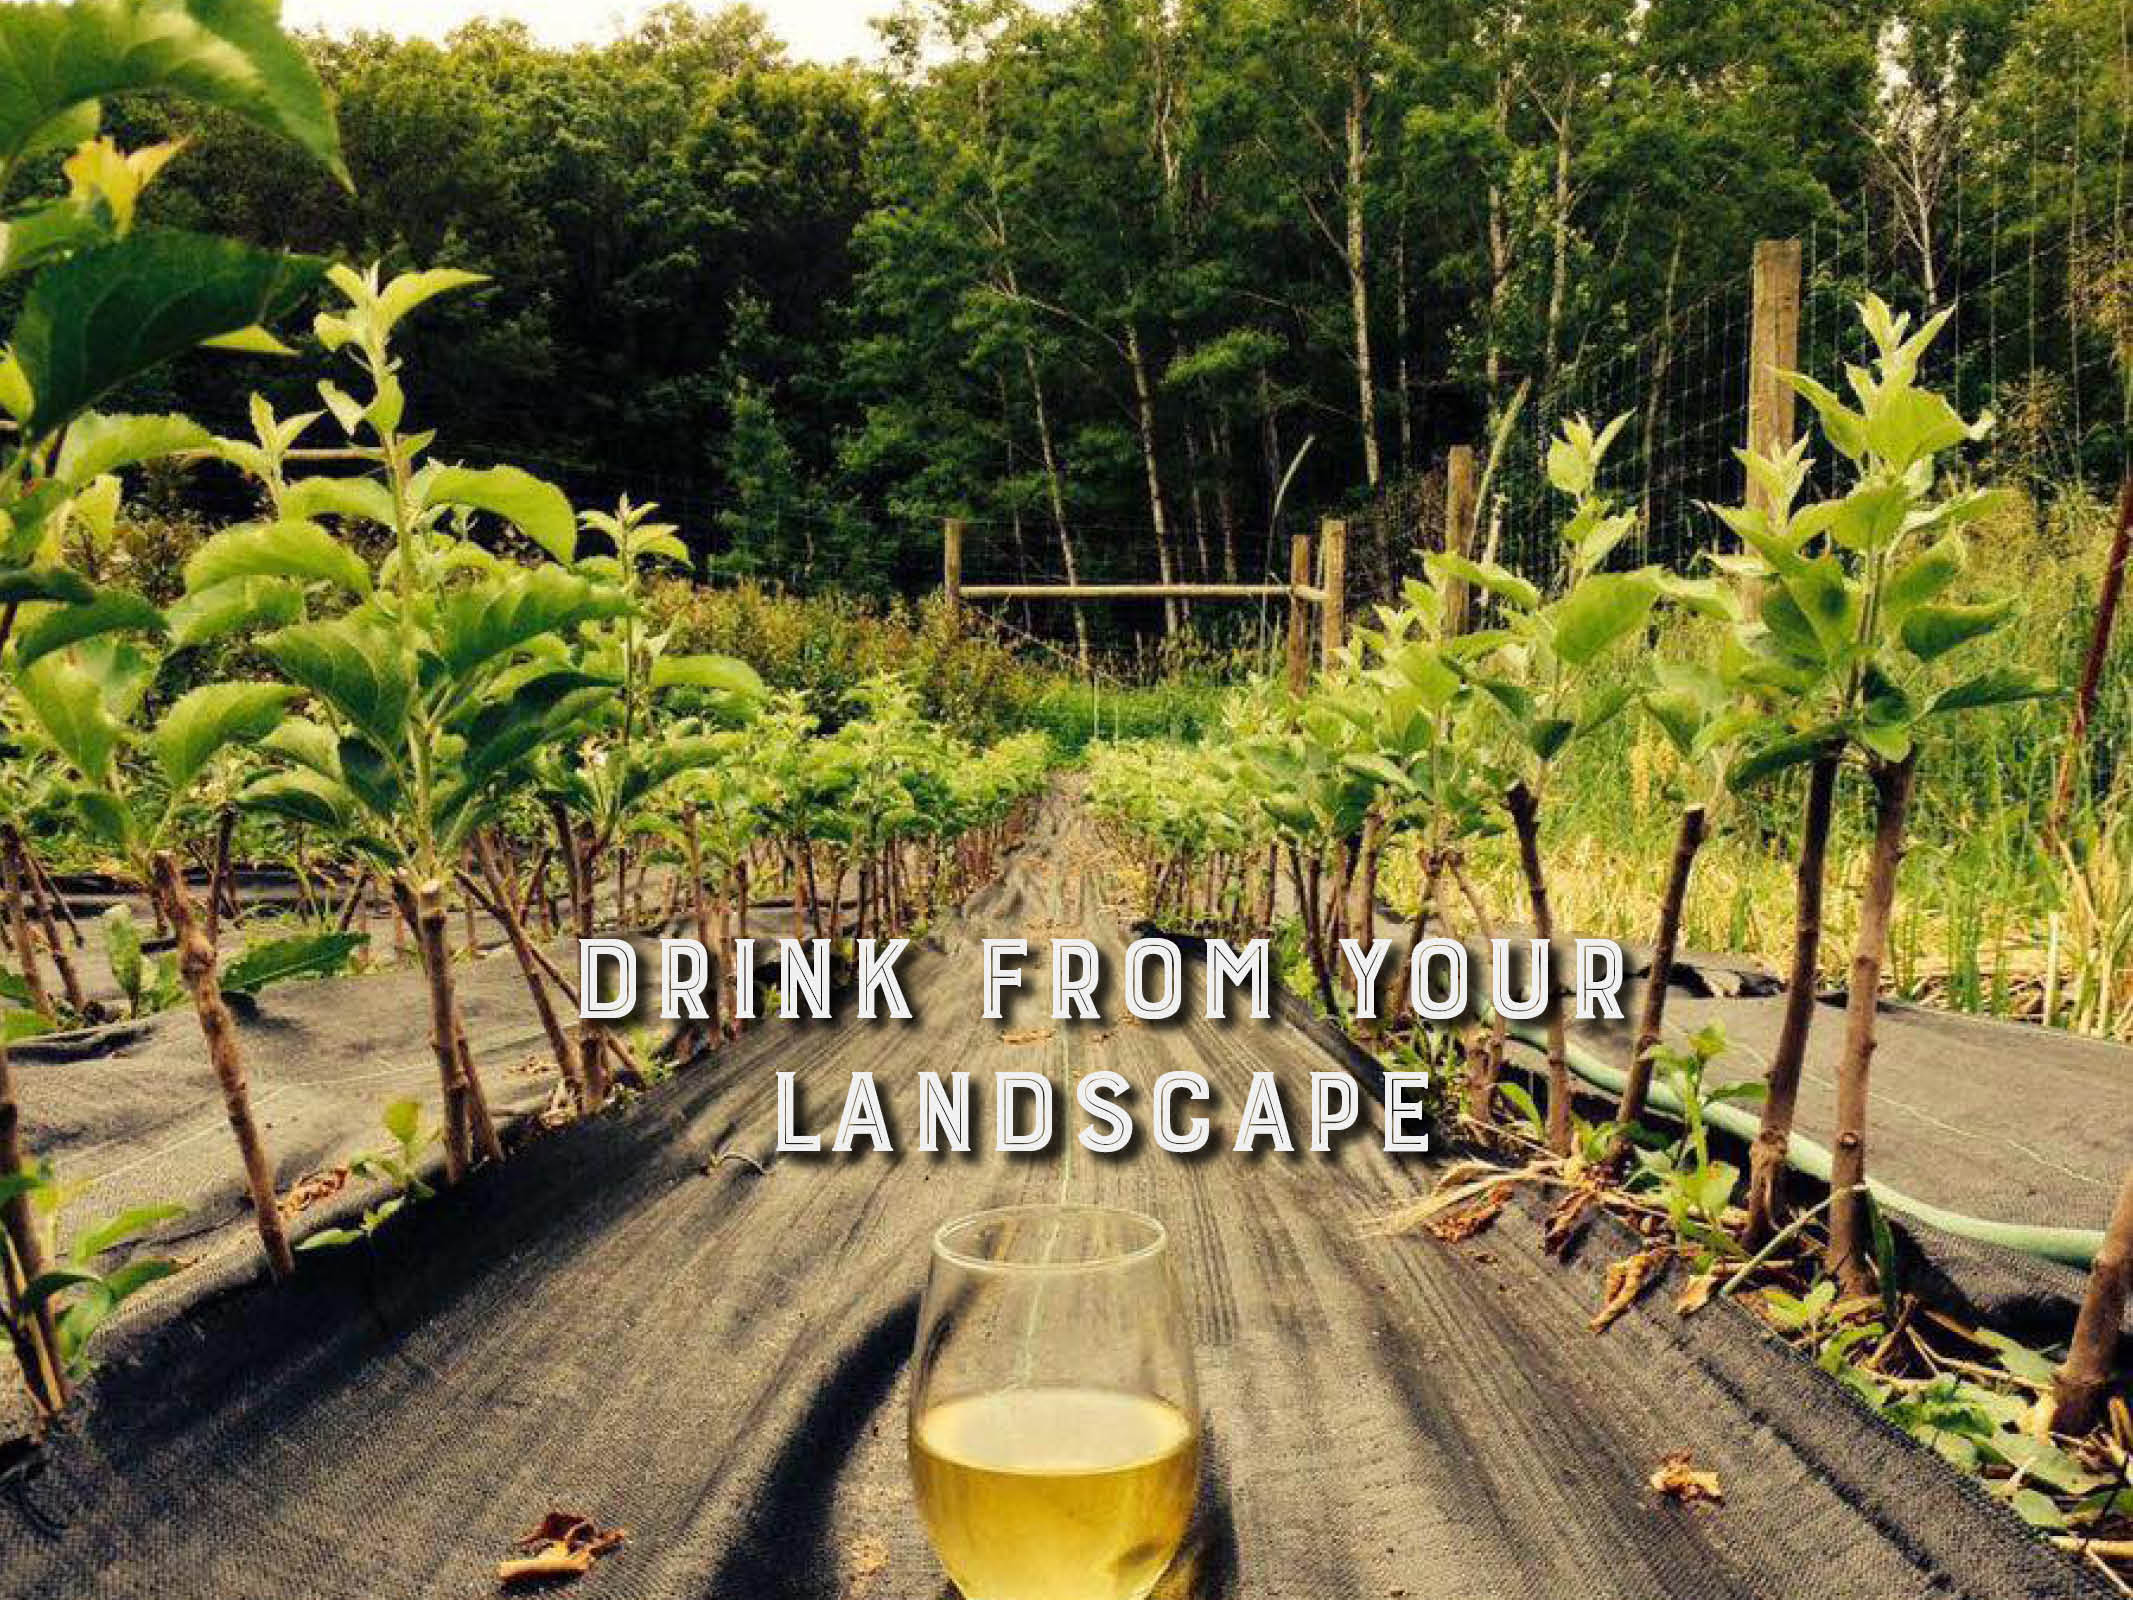 Drink from your landscape.jpg